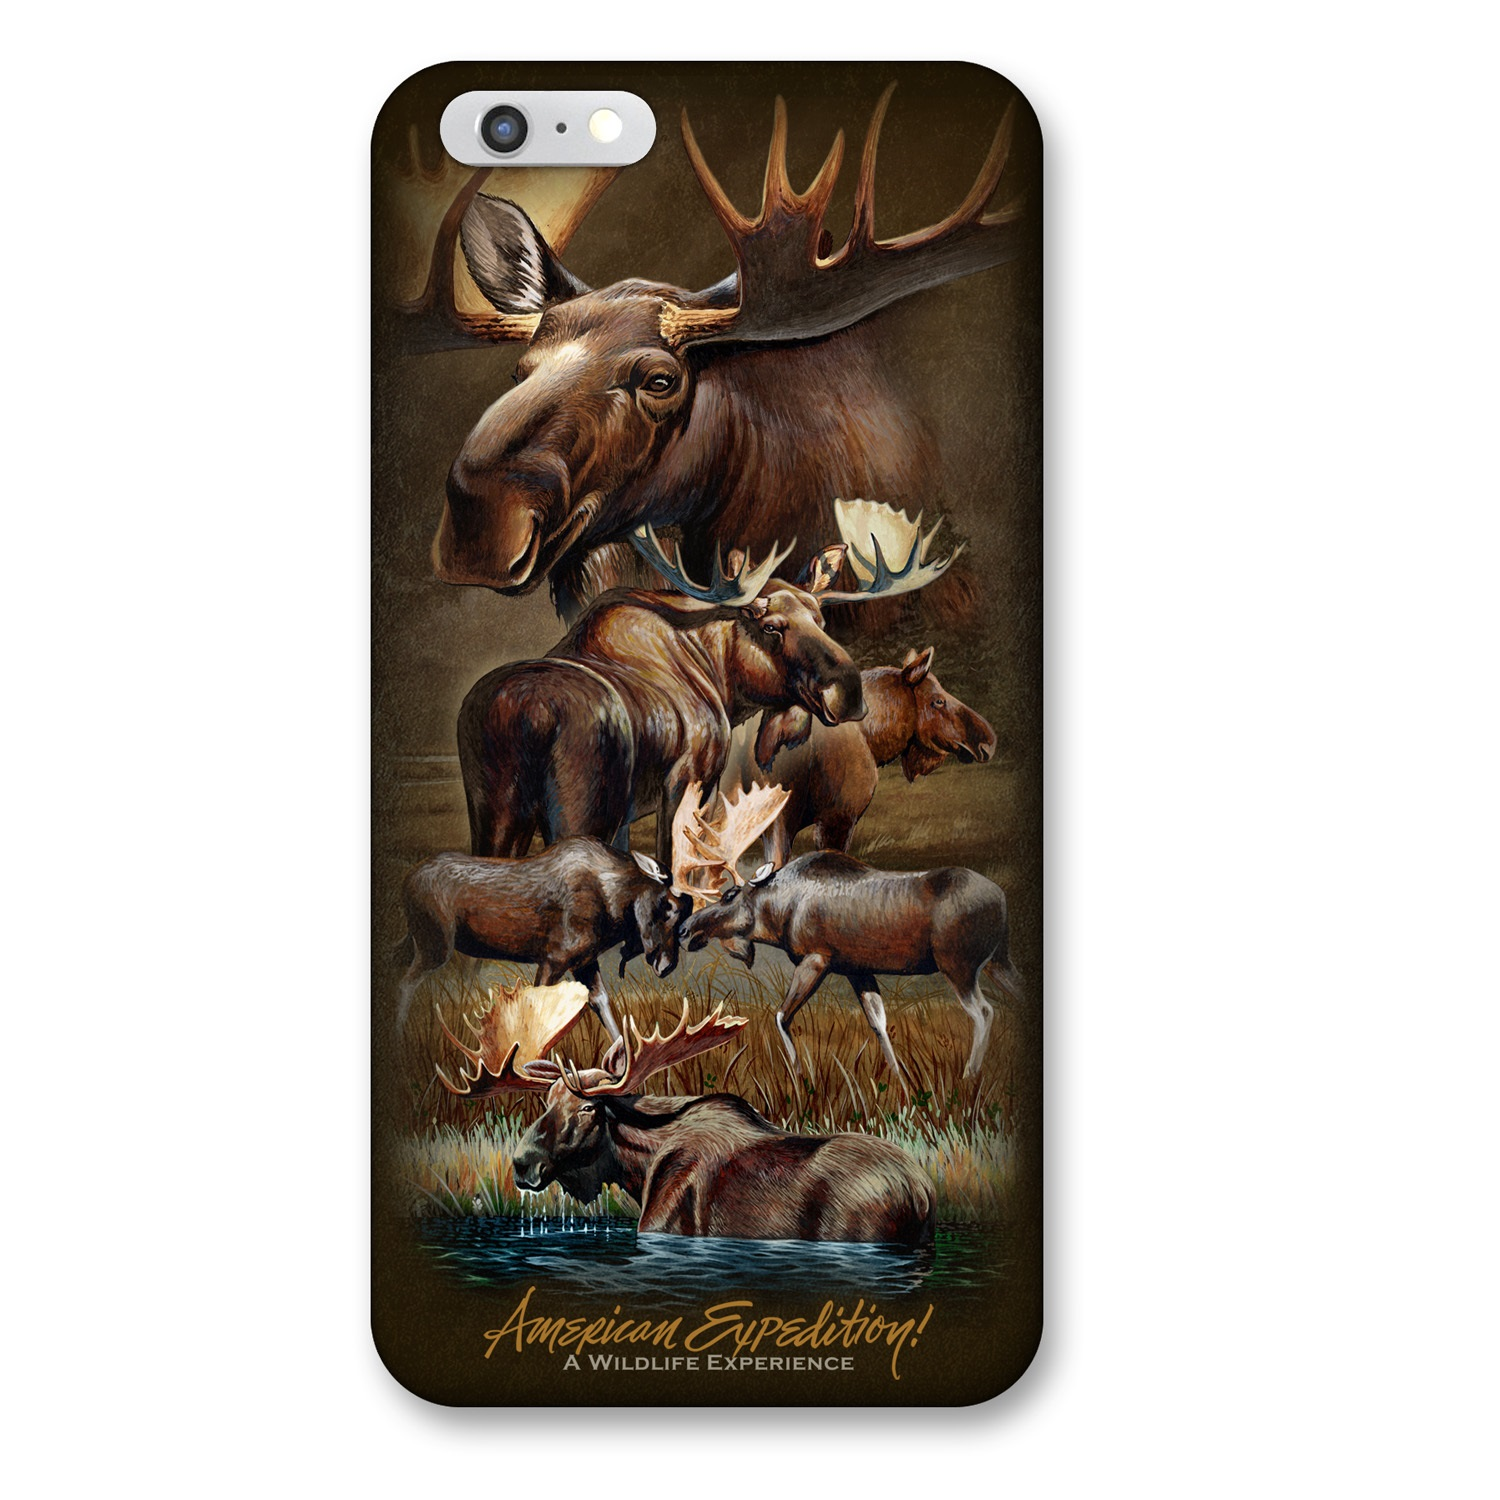 American Expedition iPhone 6 Cover - Moose Collage